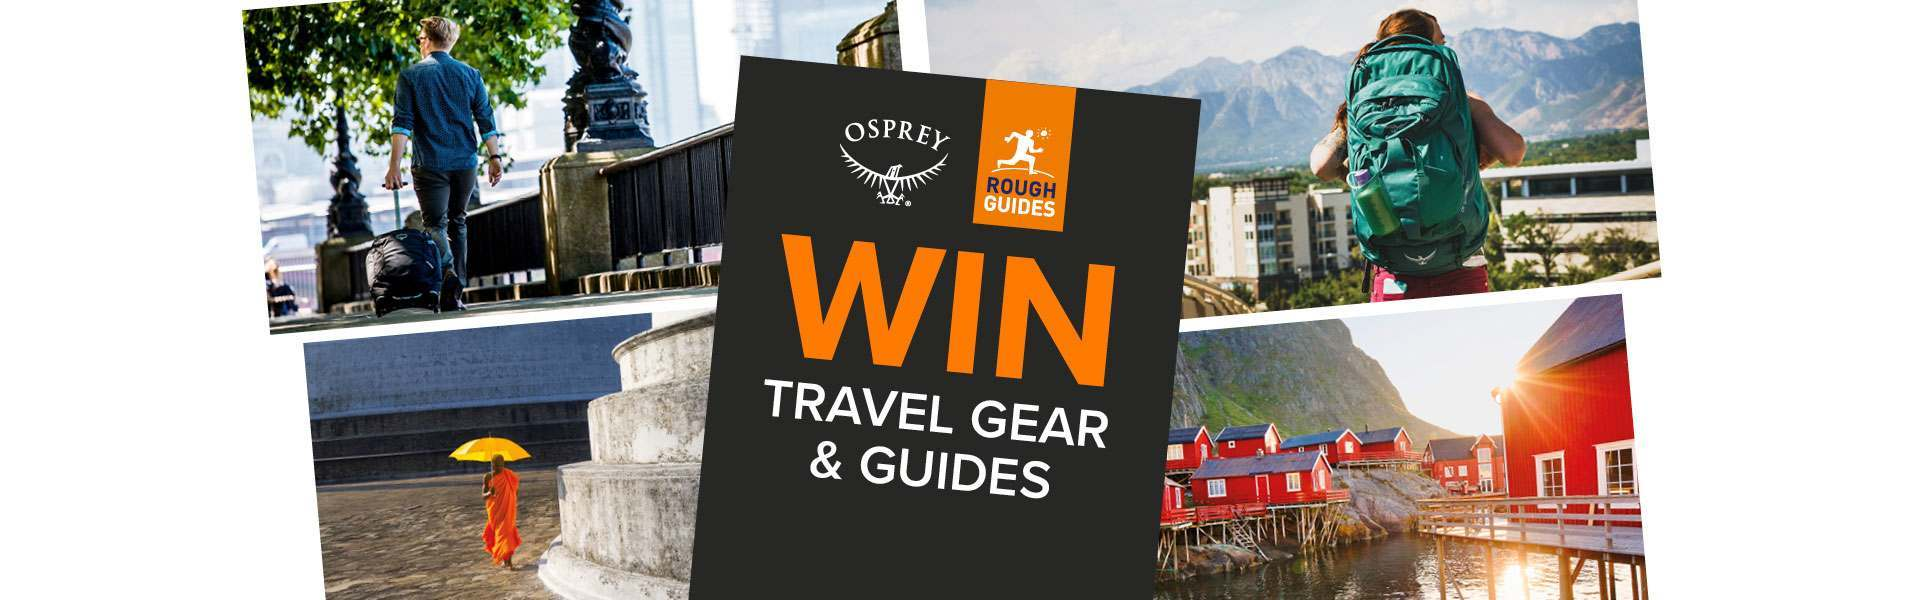 Win Travel Gear & Guides